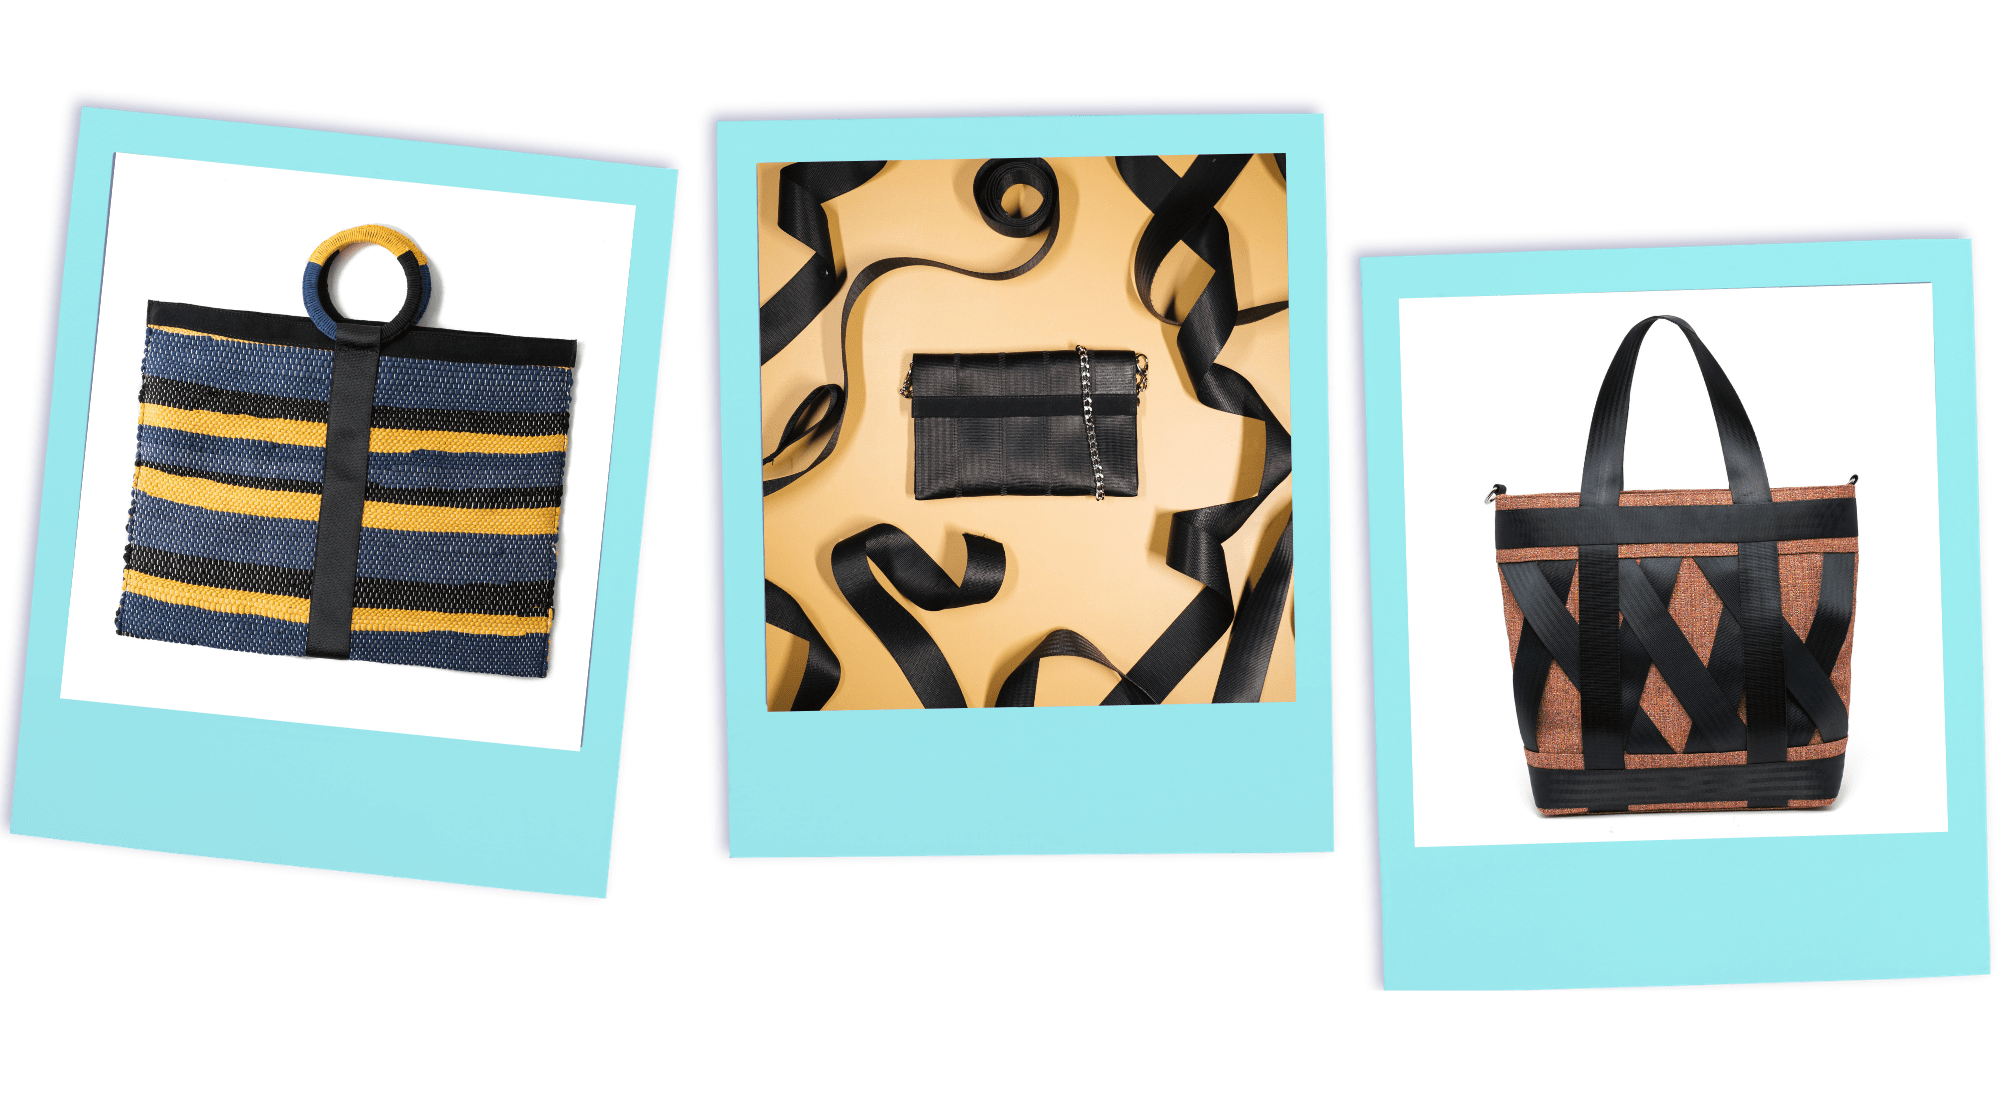 From Belo seatbelt handbags and accessories | Onwards and Up